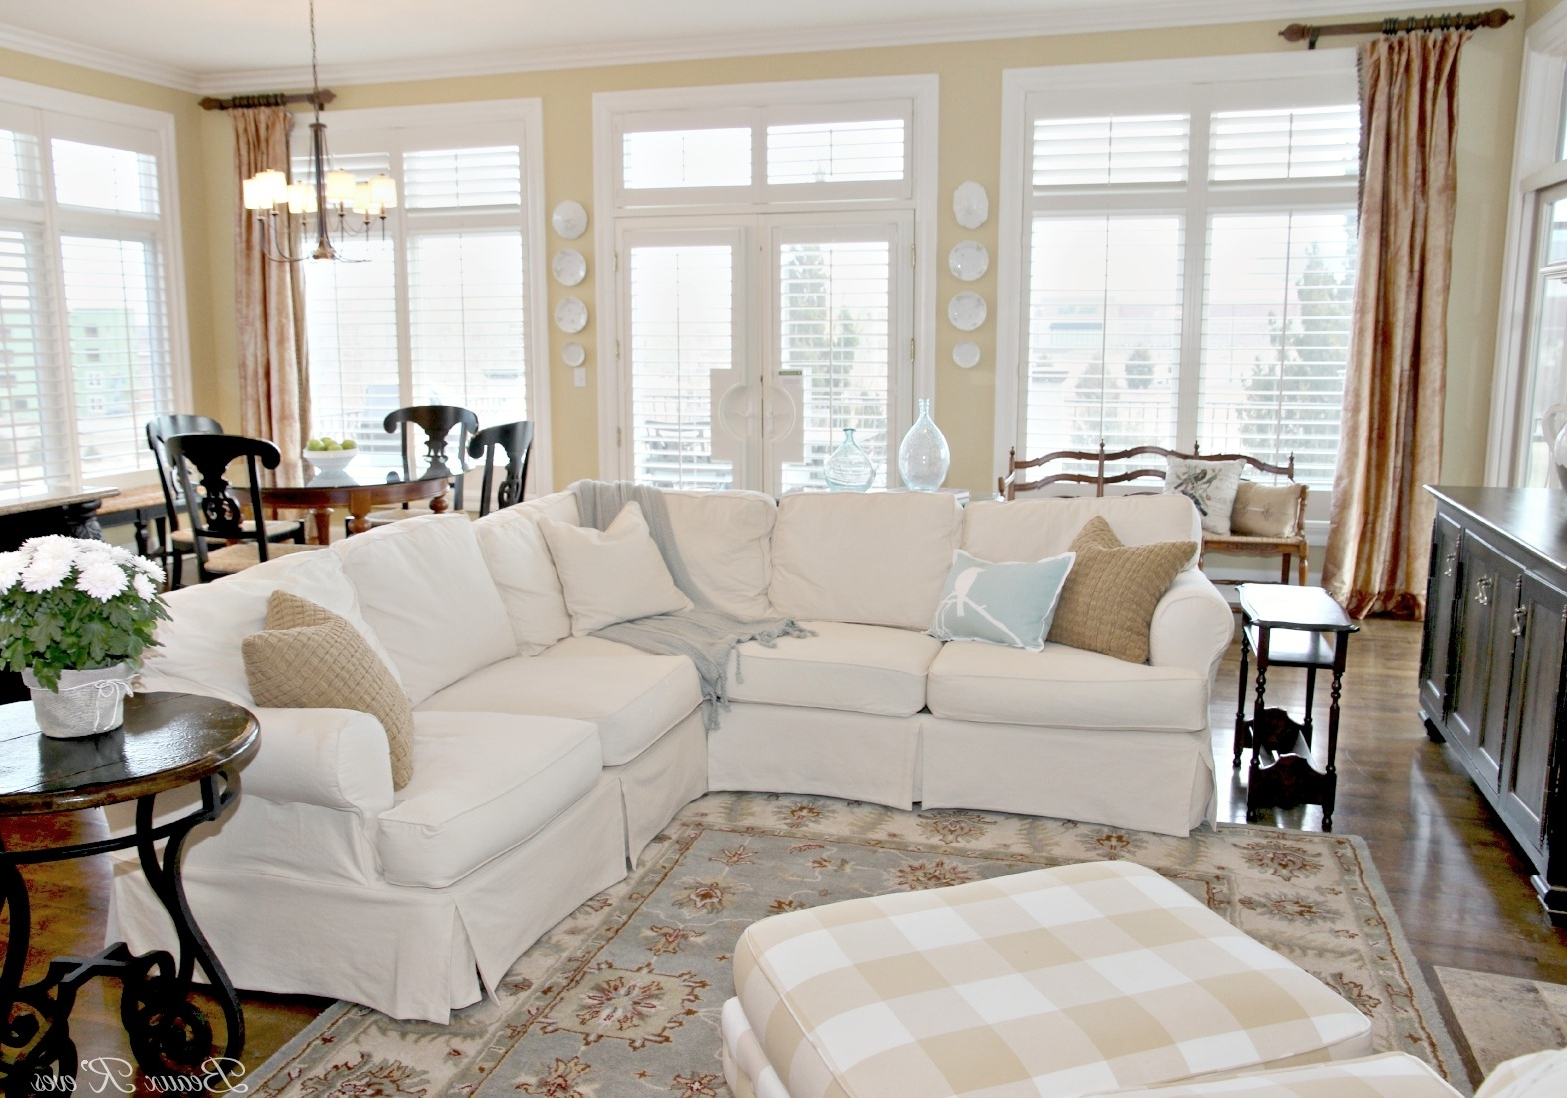 Trendy Jcpenney Sectional Sofas With Beaux R'eves: Pottery Barn Knock Off Jcpenney Slipcovered (View 2 of 15)